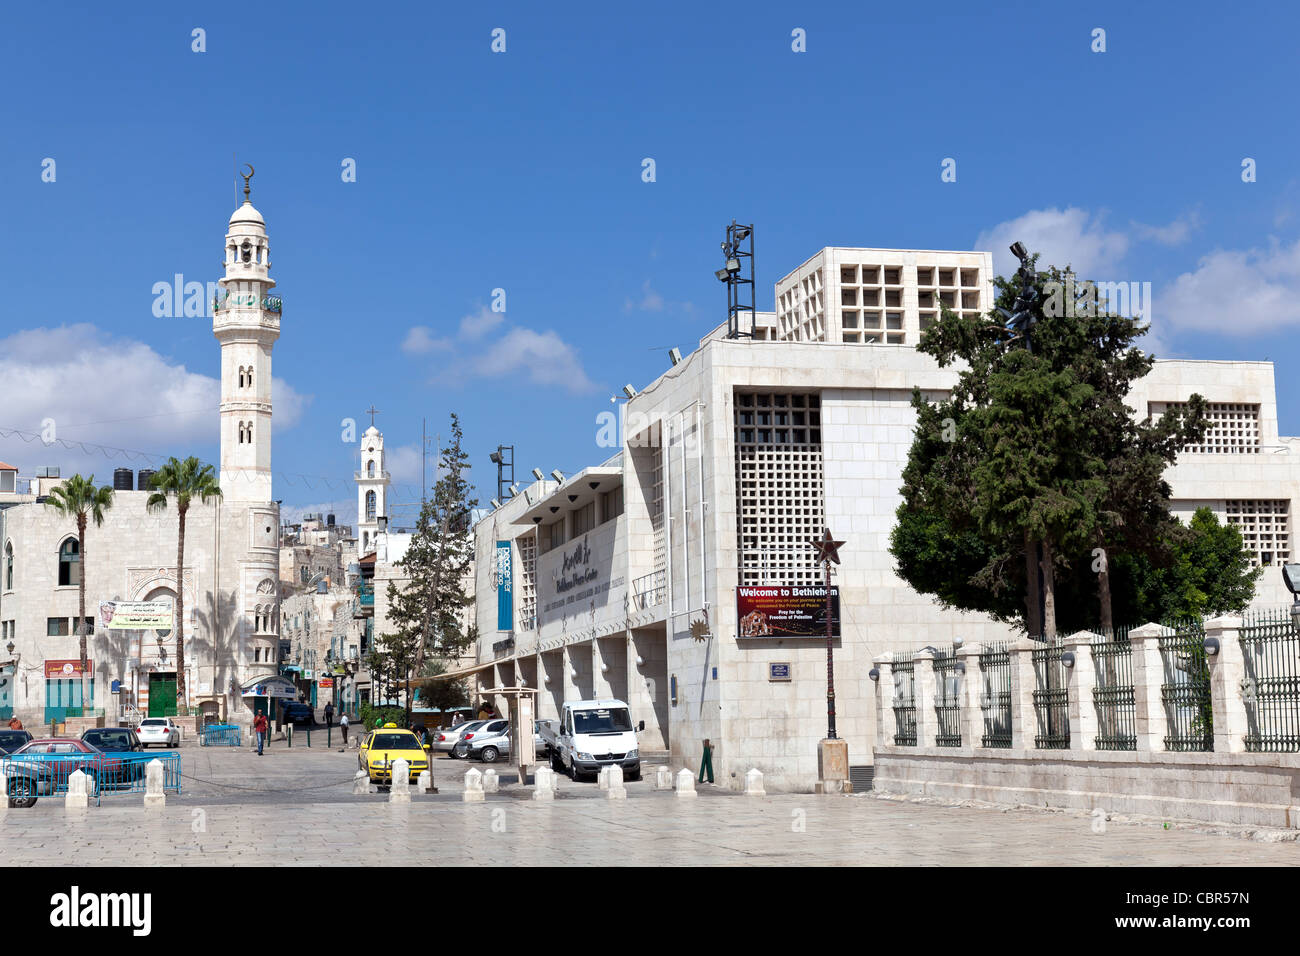 Palestin. A tall minaret stands in Manger Square in Bethlehem - Stock Image